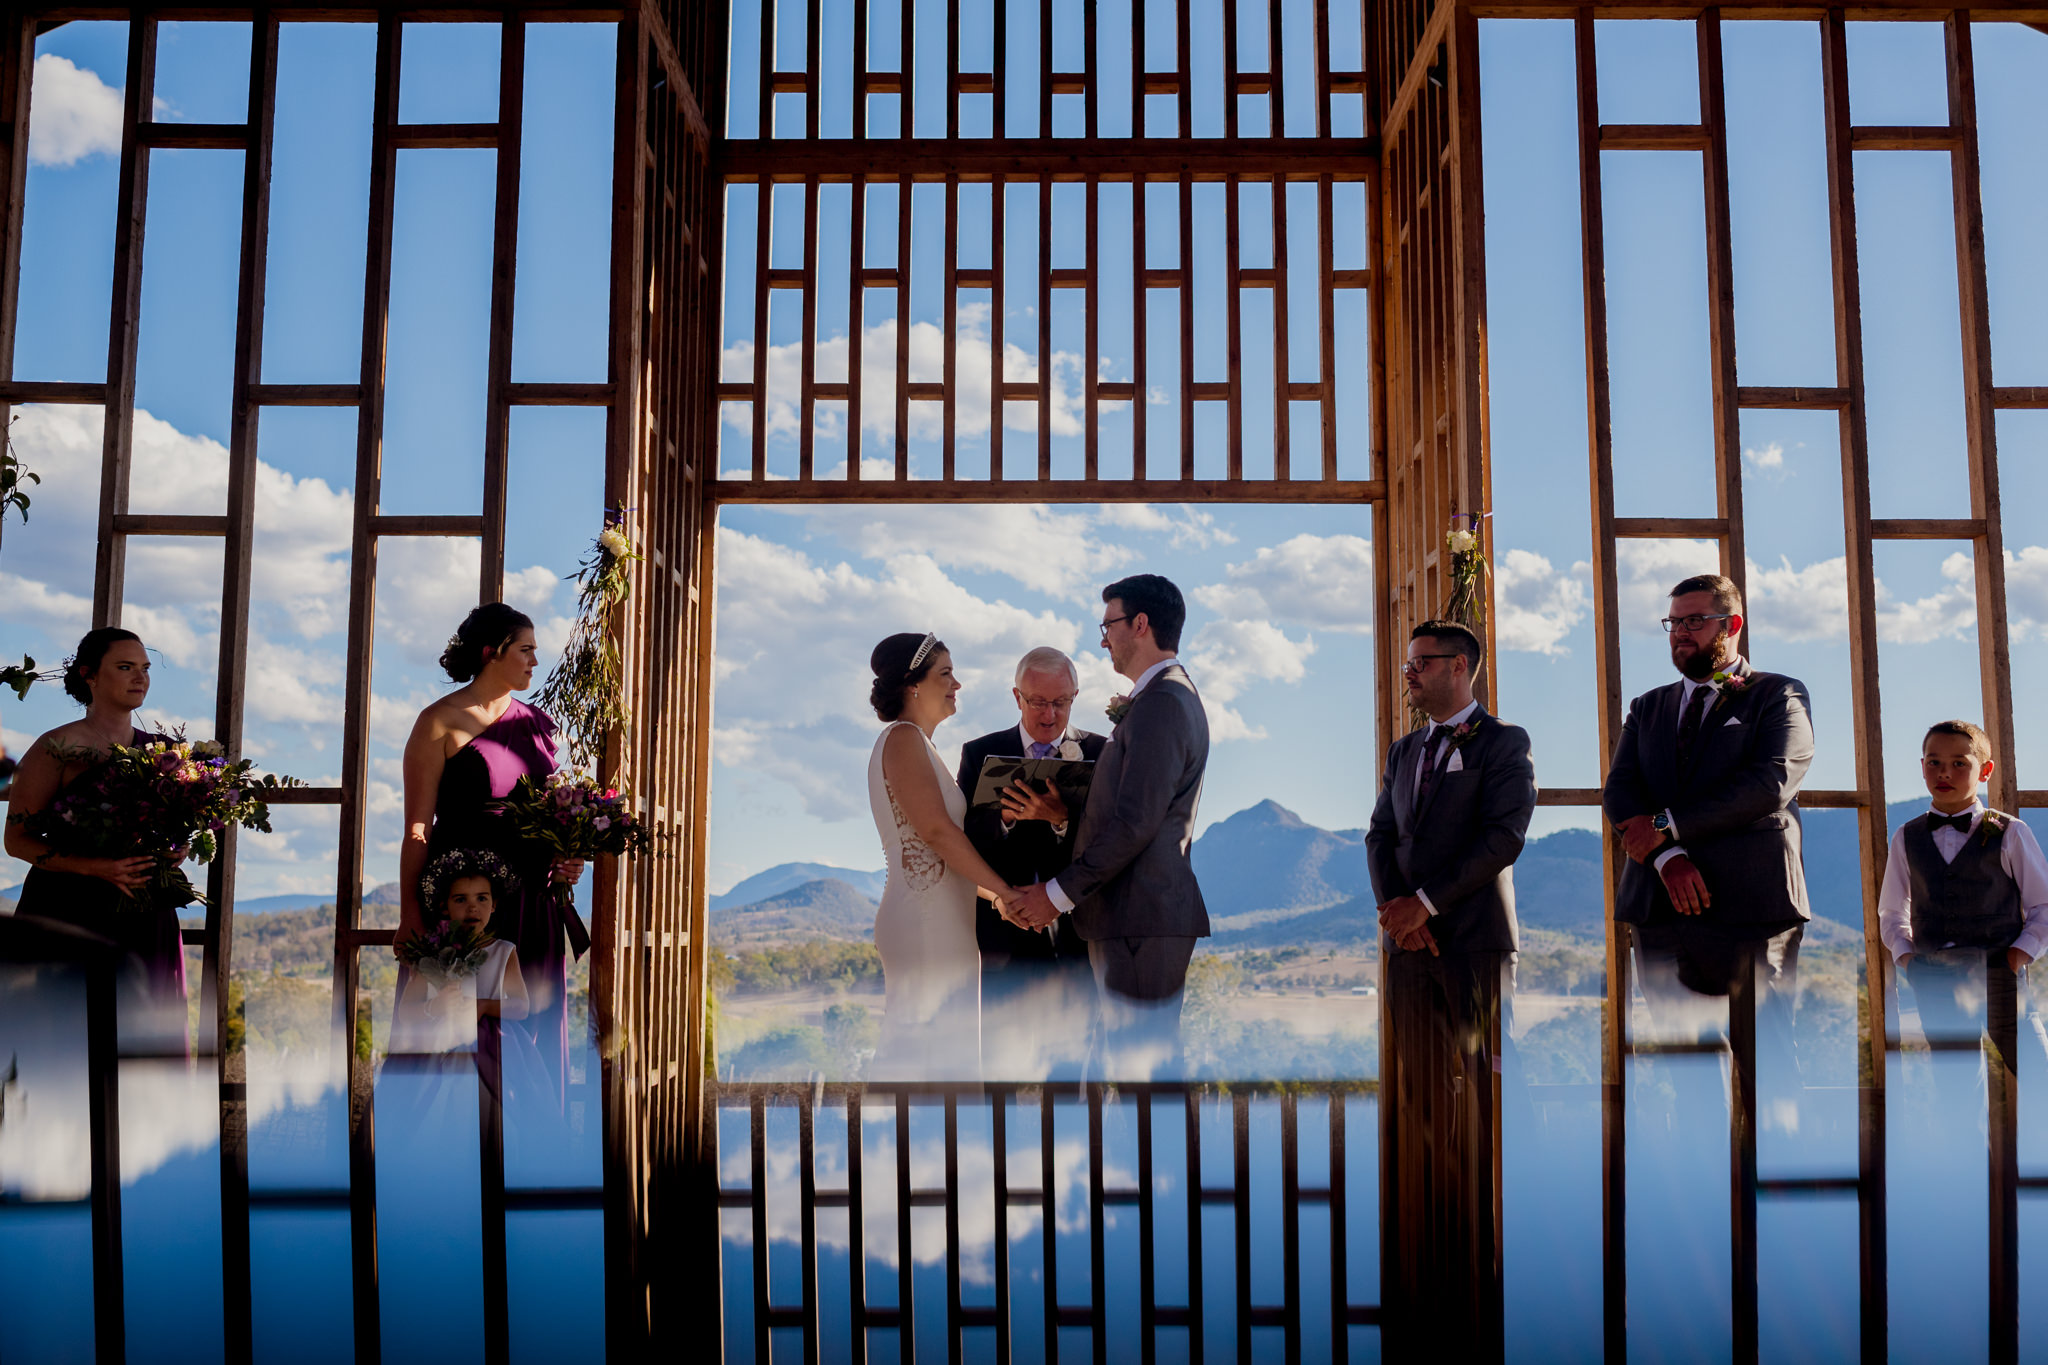 During a wedding ceremony at a wooden-framed chapel with the chapel detail reflected at the bottom of the photo